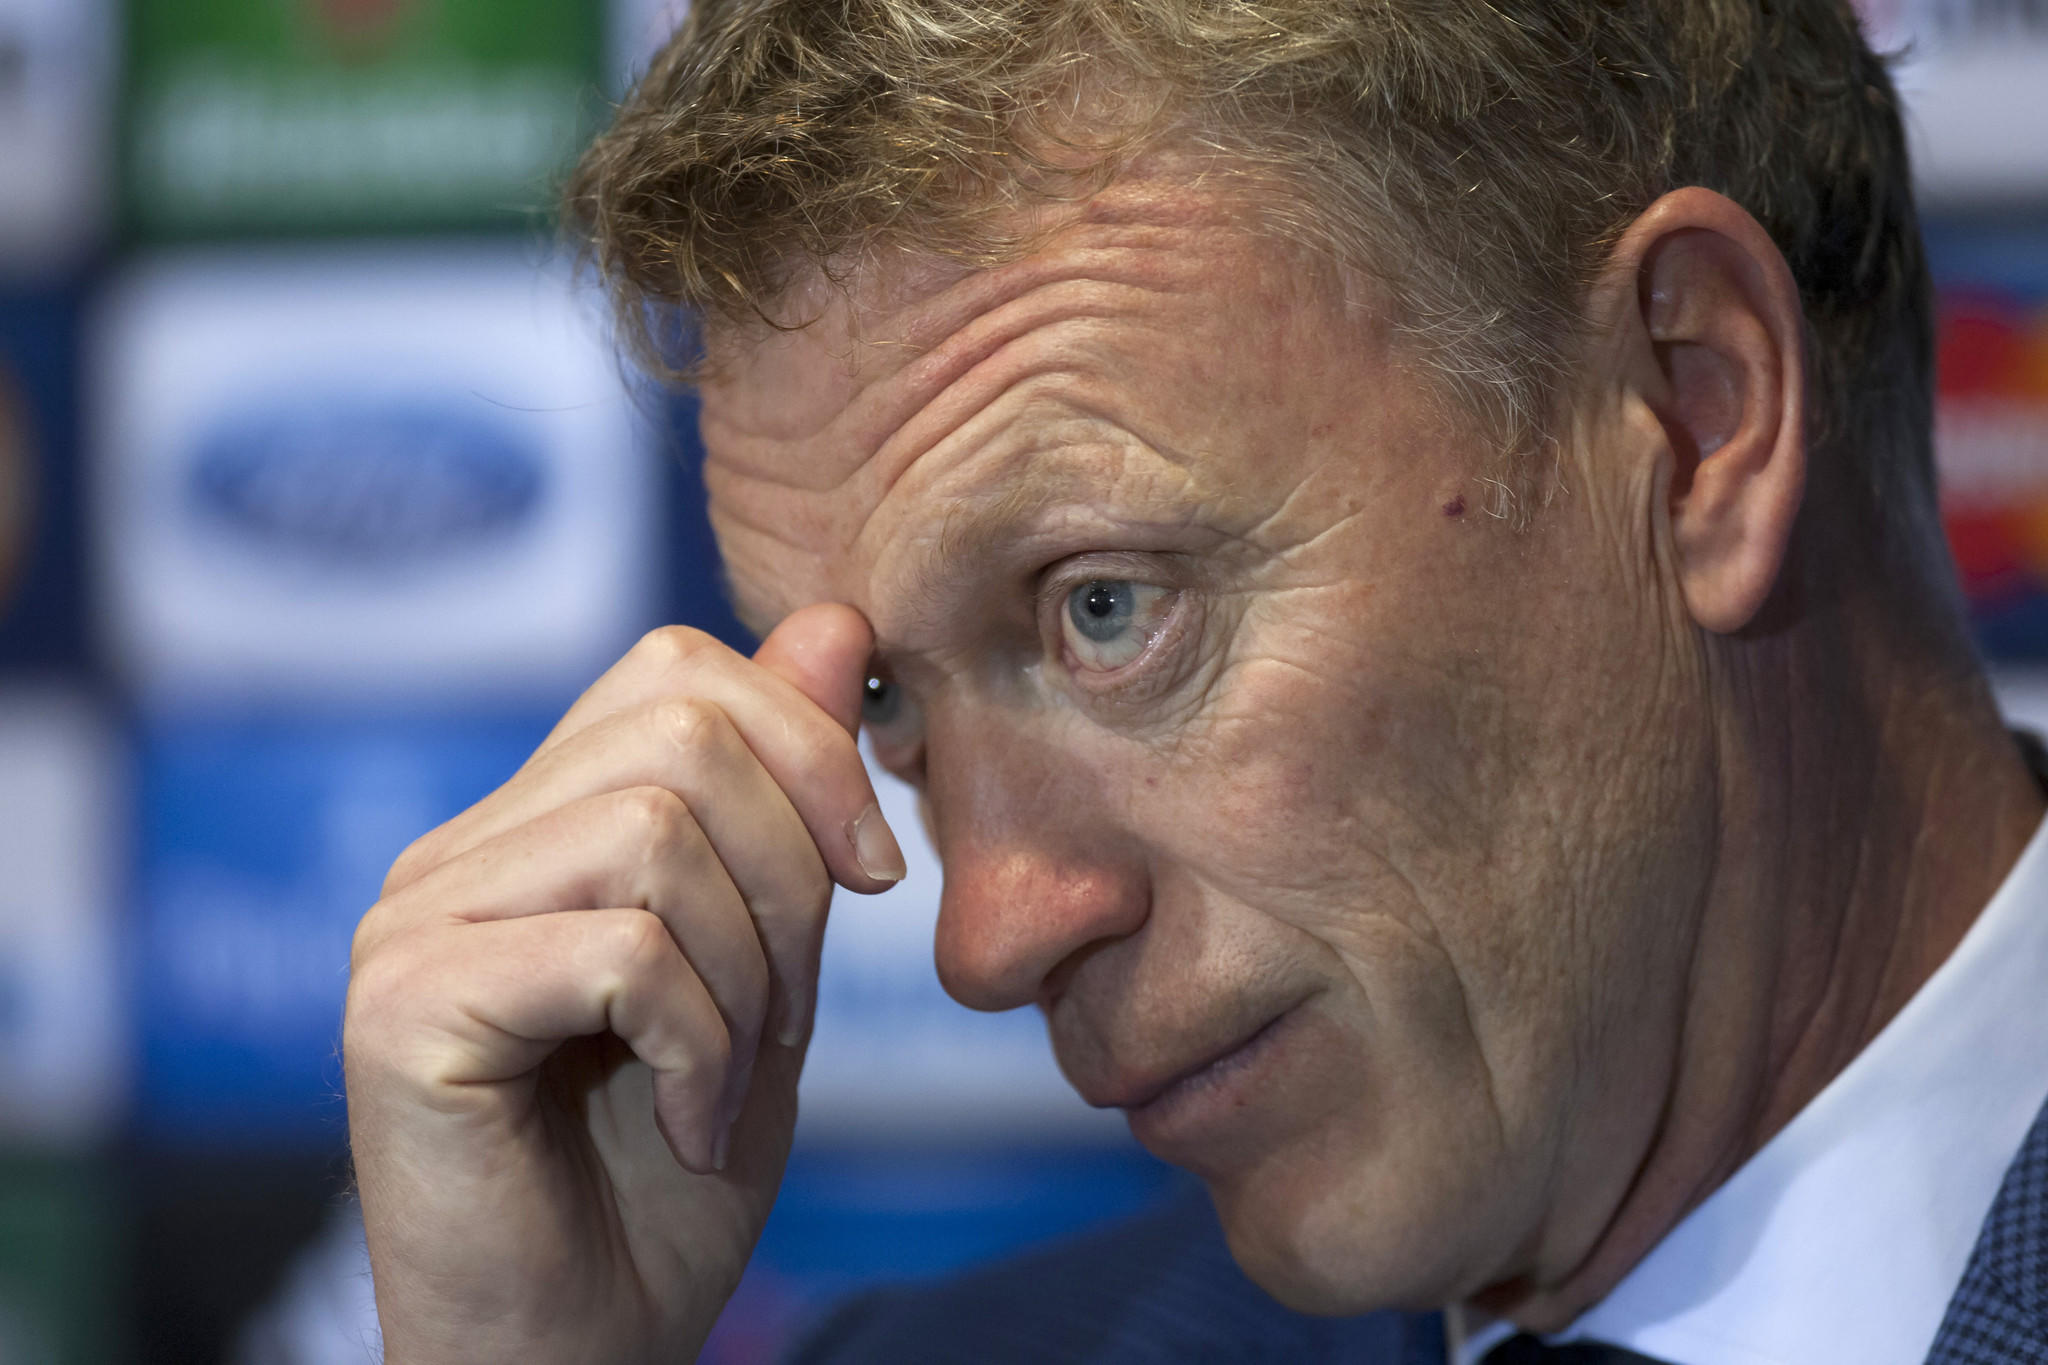 David Moyes was dismissed as manager of Manchester United.